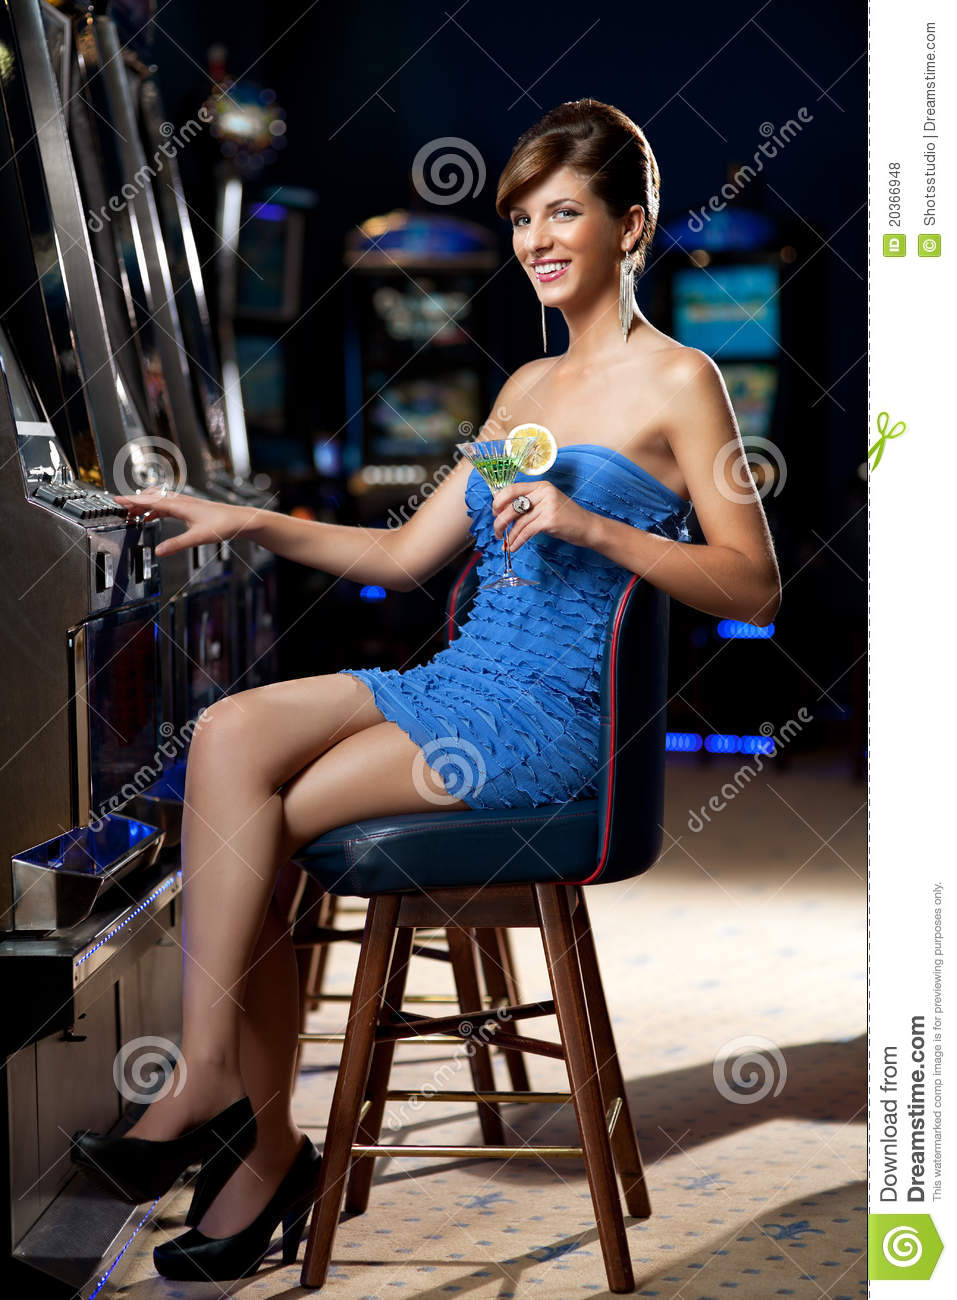 Lady Dream Casino